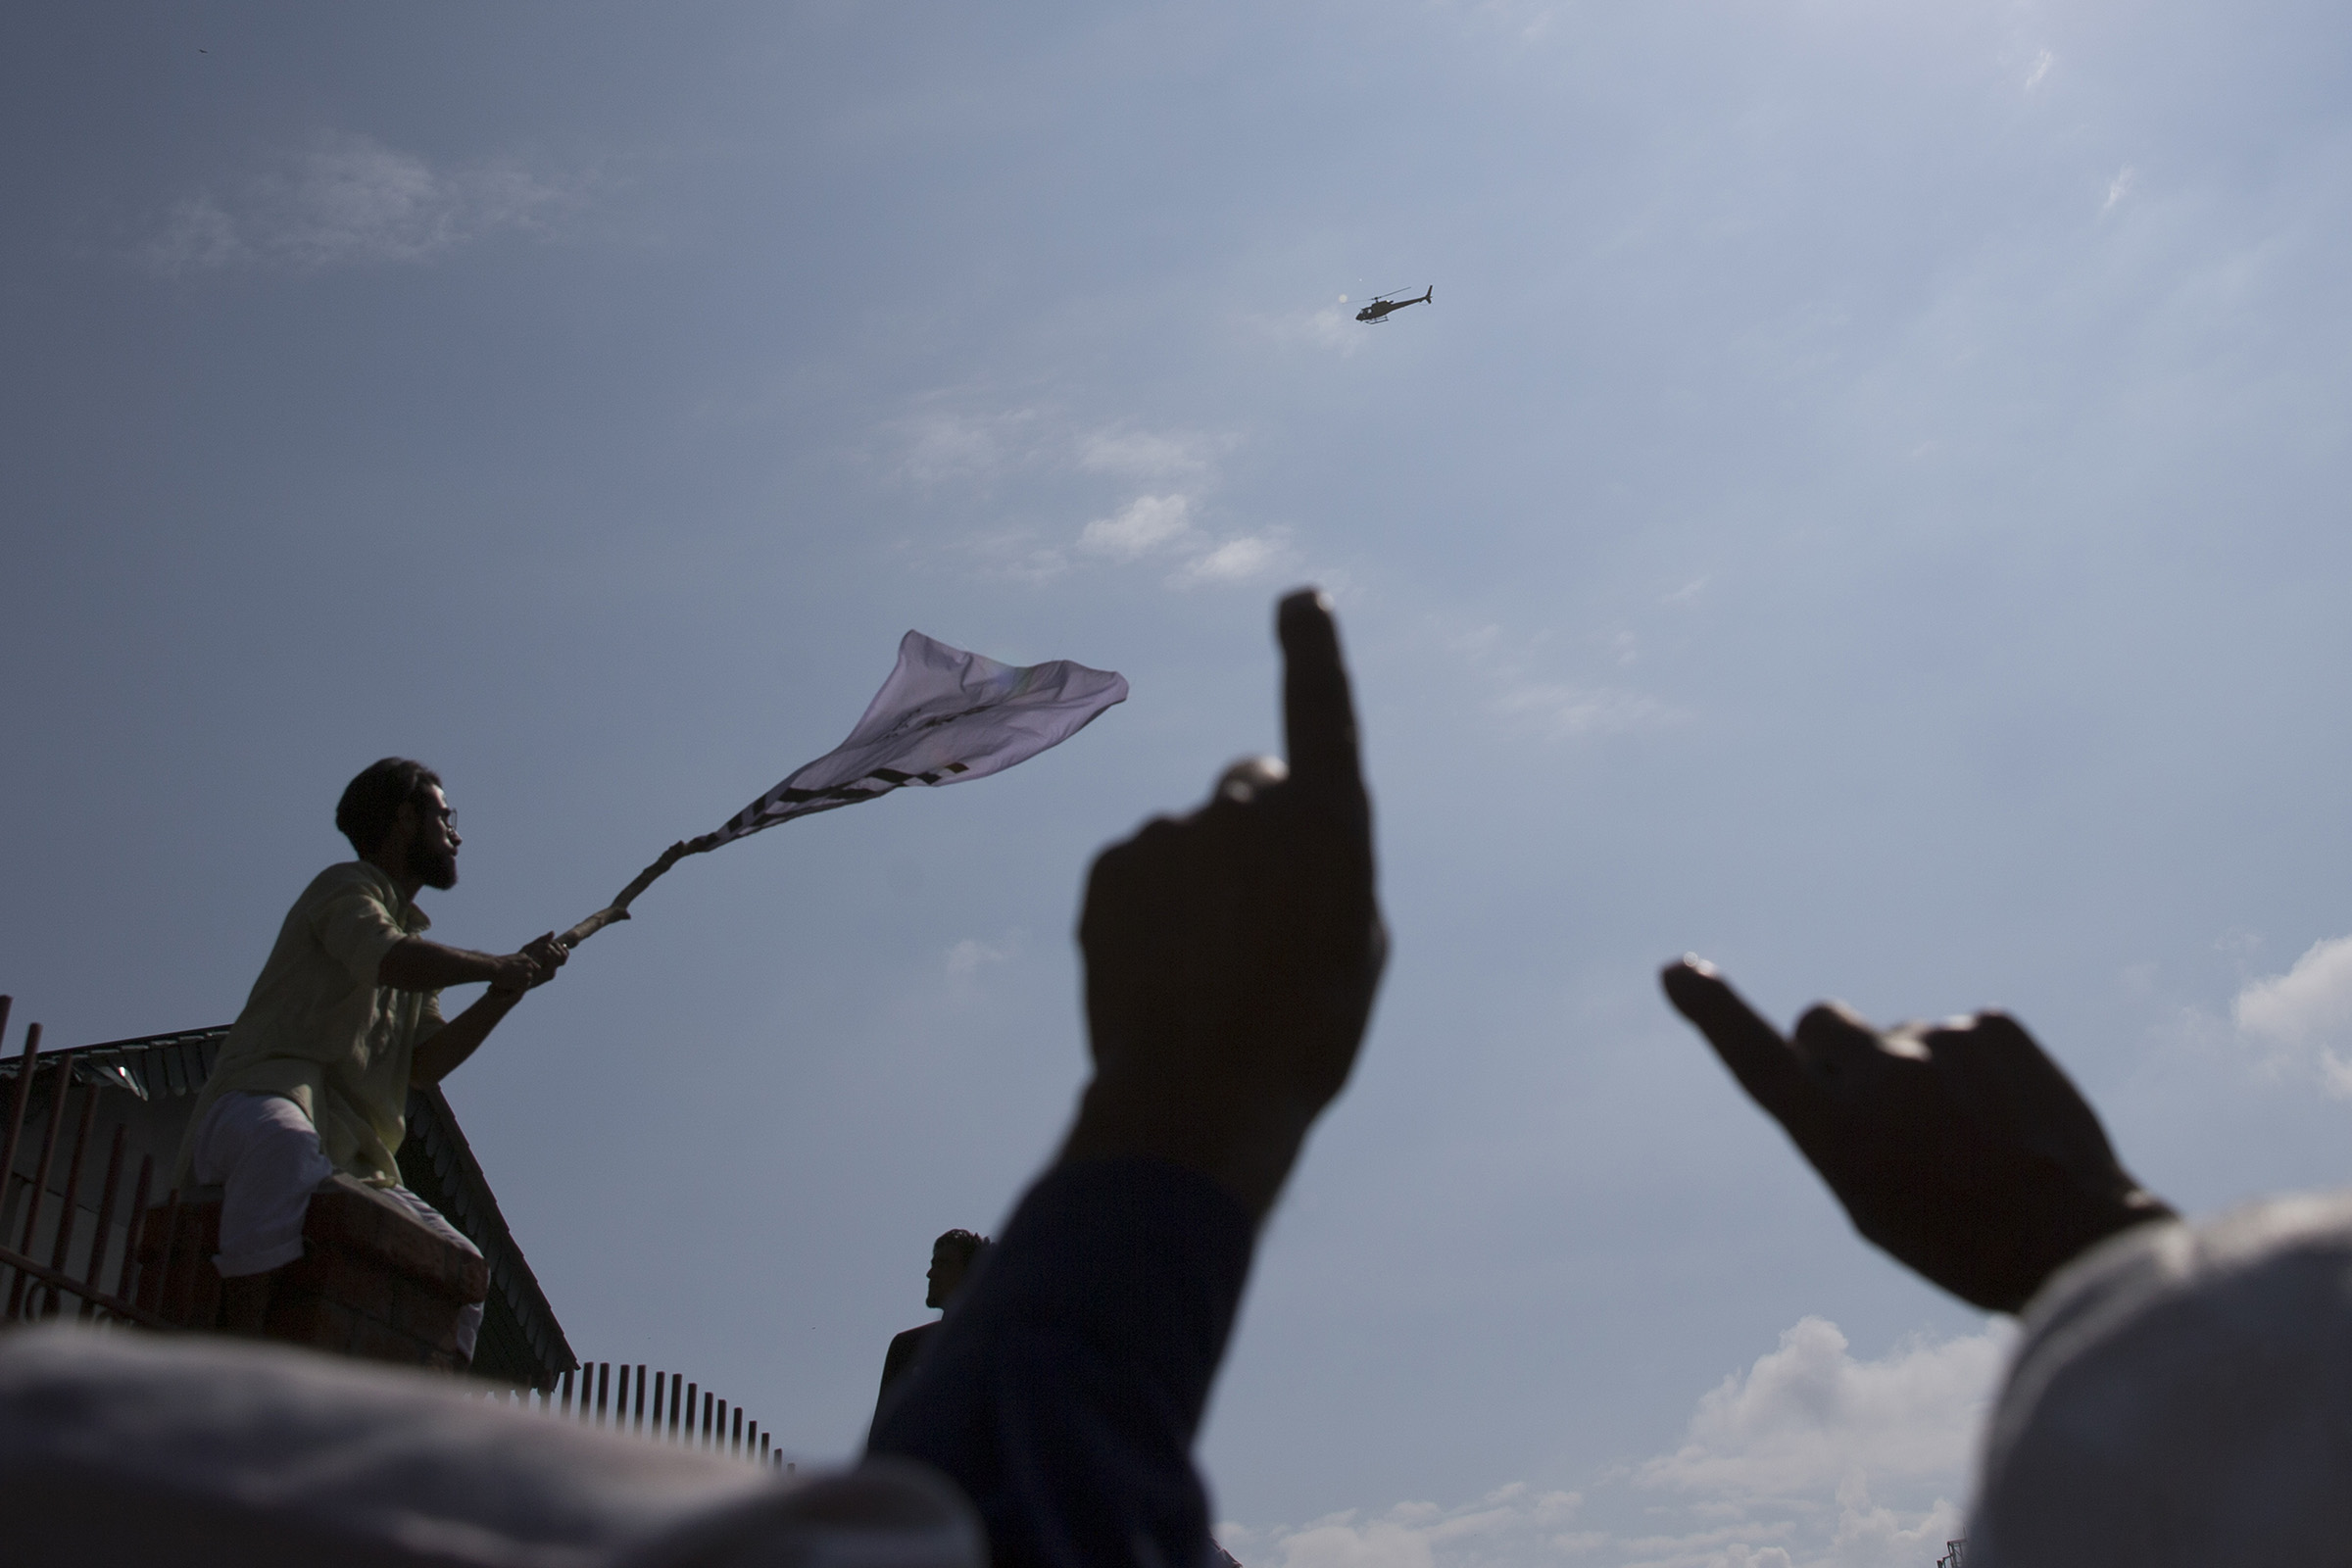 A Kashmiri protester waves a flag as Indian authorities in a helicopter monitor a protest after Eid prayers in Srinagar, Indian controlled Kashmir, on Aug. 12, 2019.